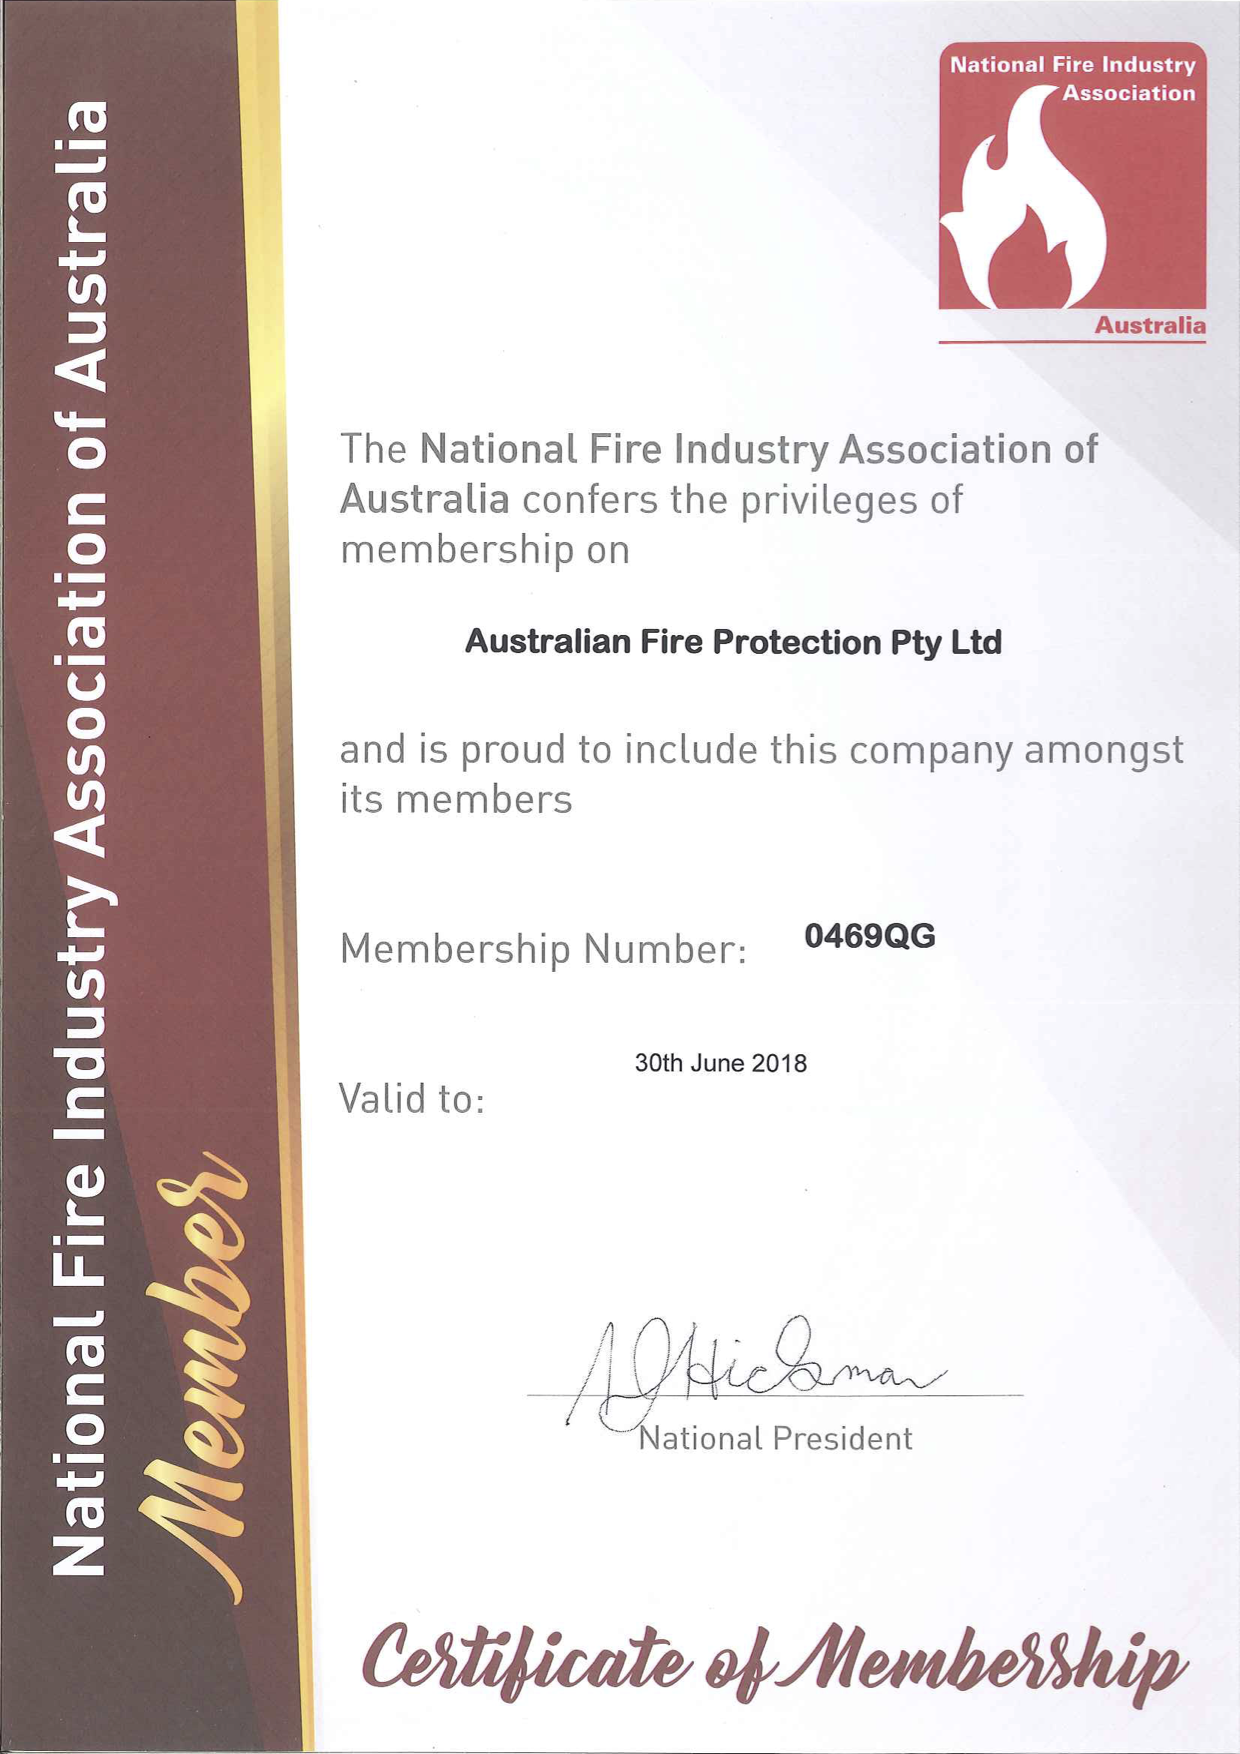 National Fire Industry Association Certificate